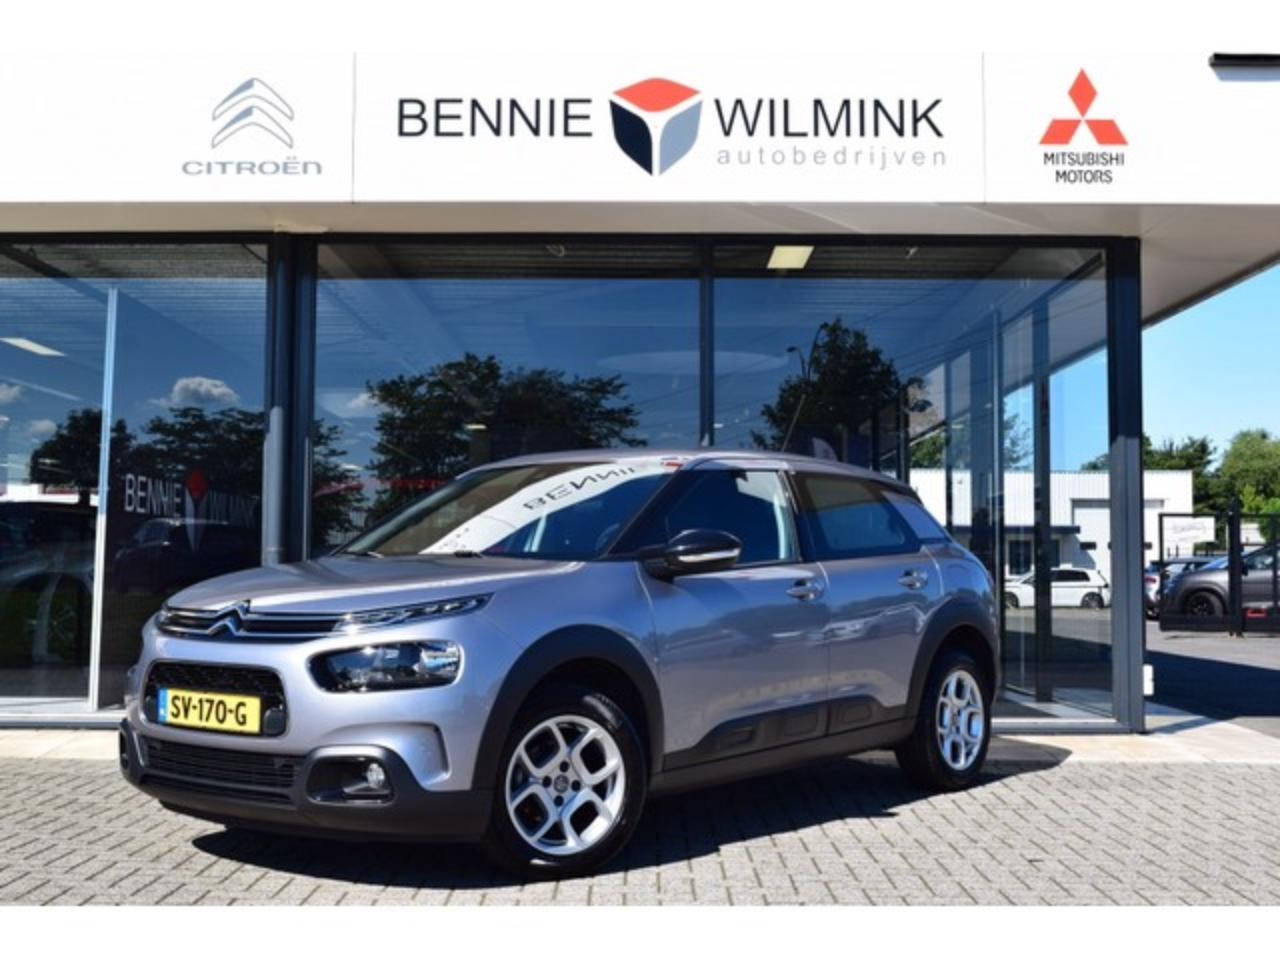 Citroën C4 Cactus 1.2 PT 110PK Business + Comfort Seats